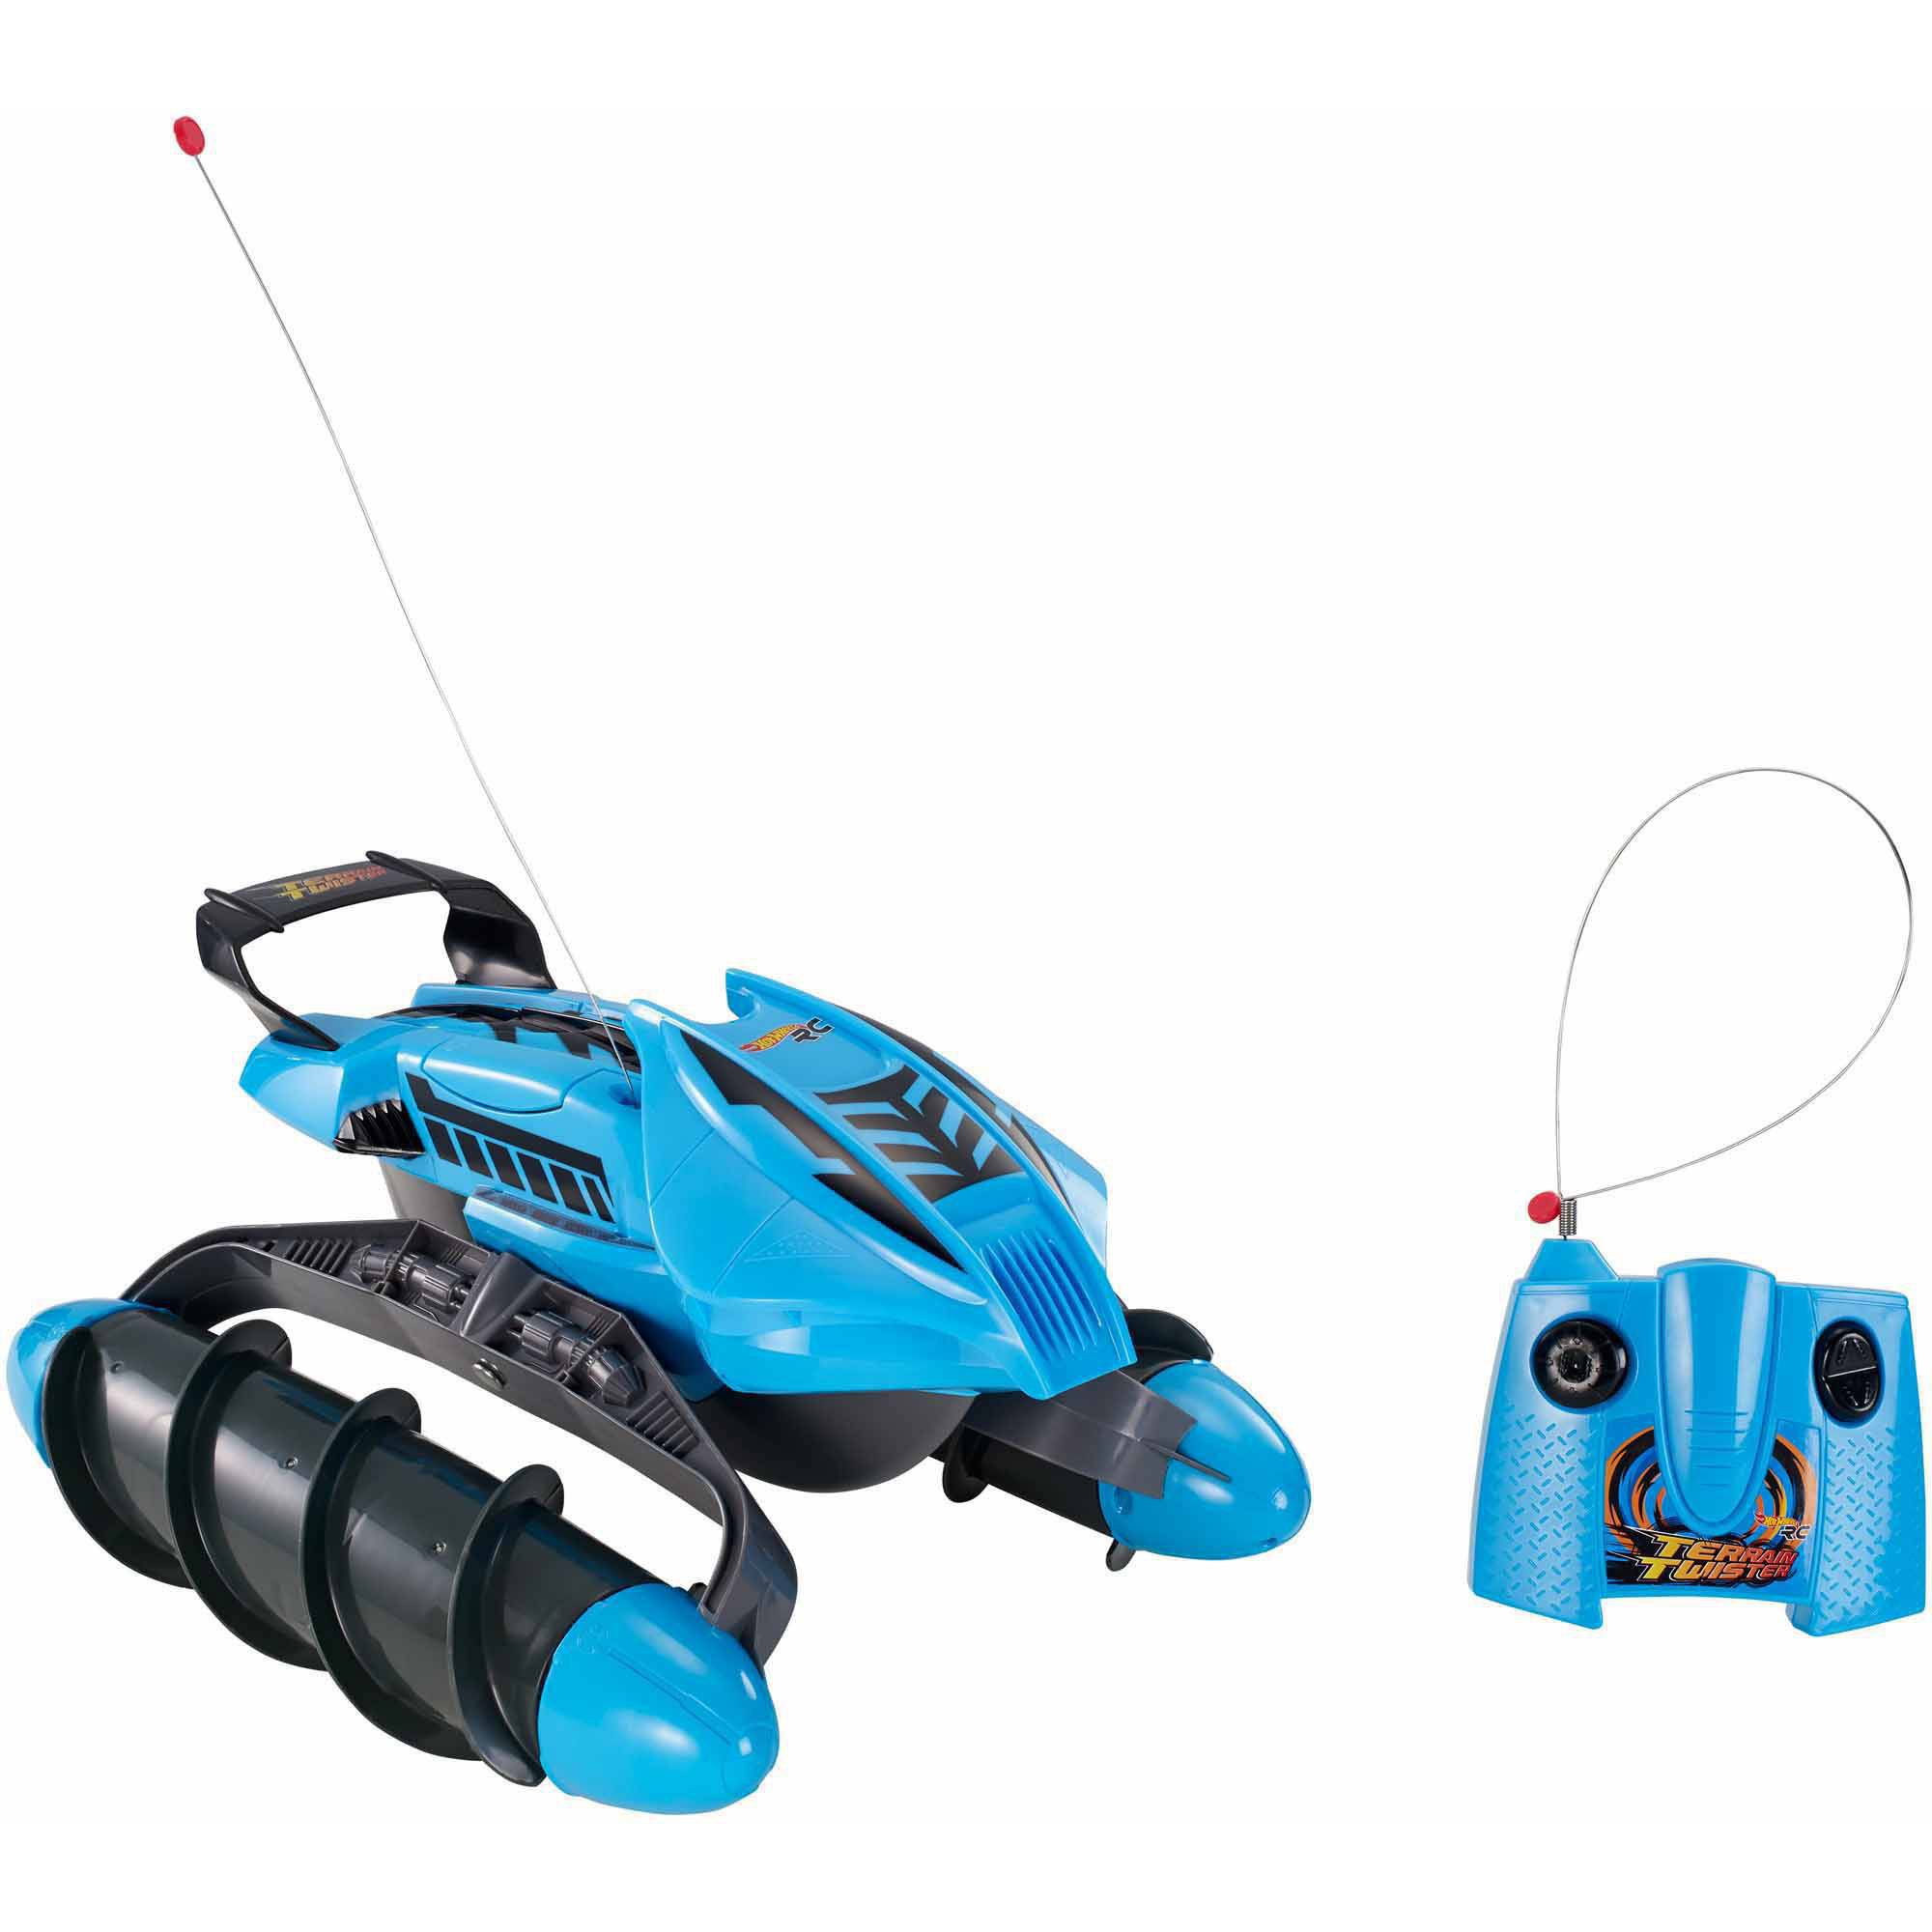 Hot Wheels Terrain Twister Vehicle, Blue